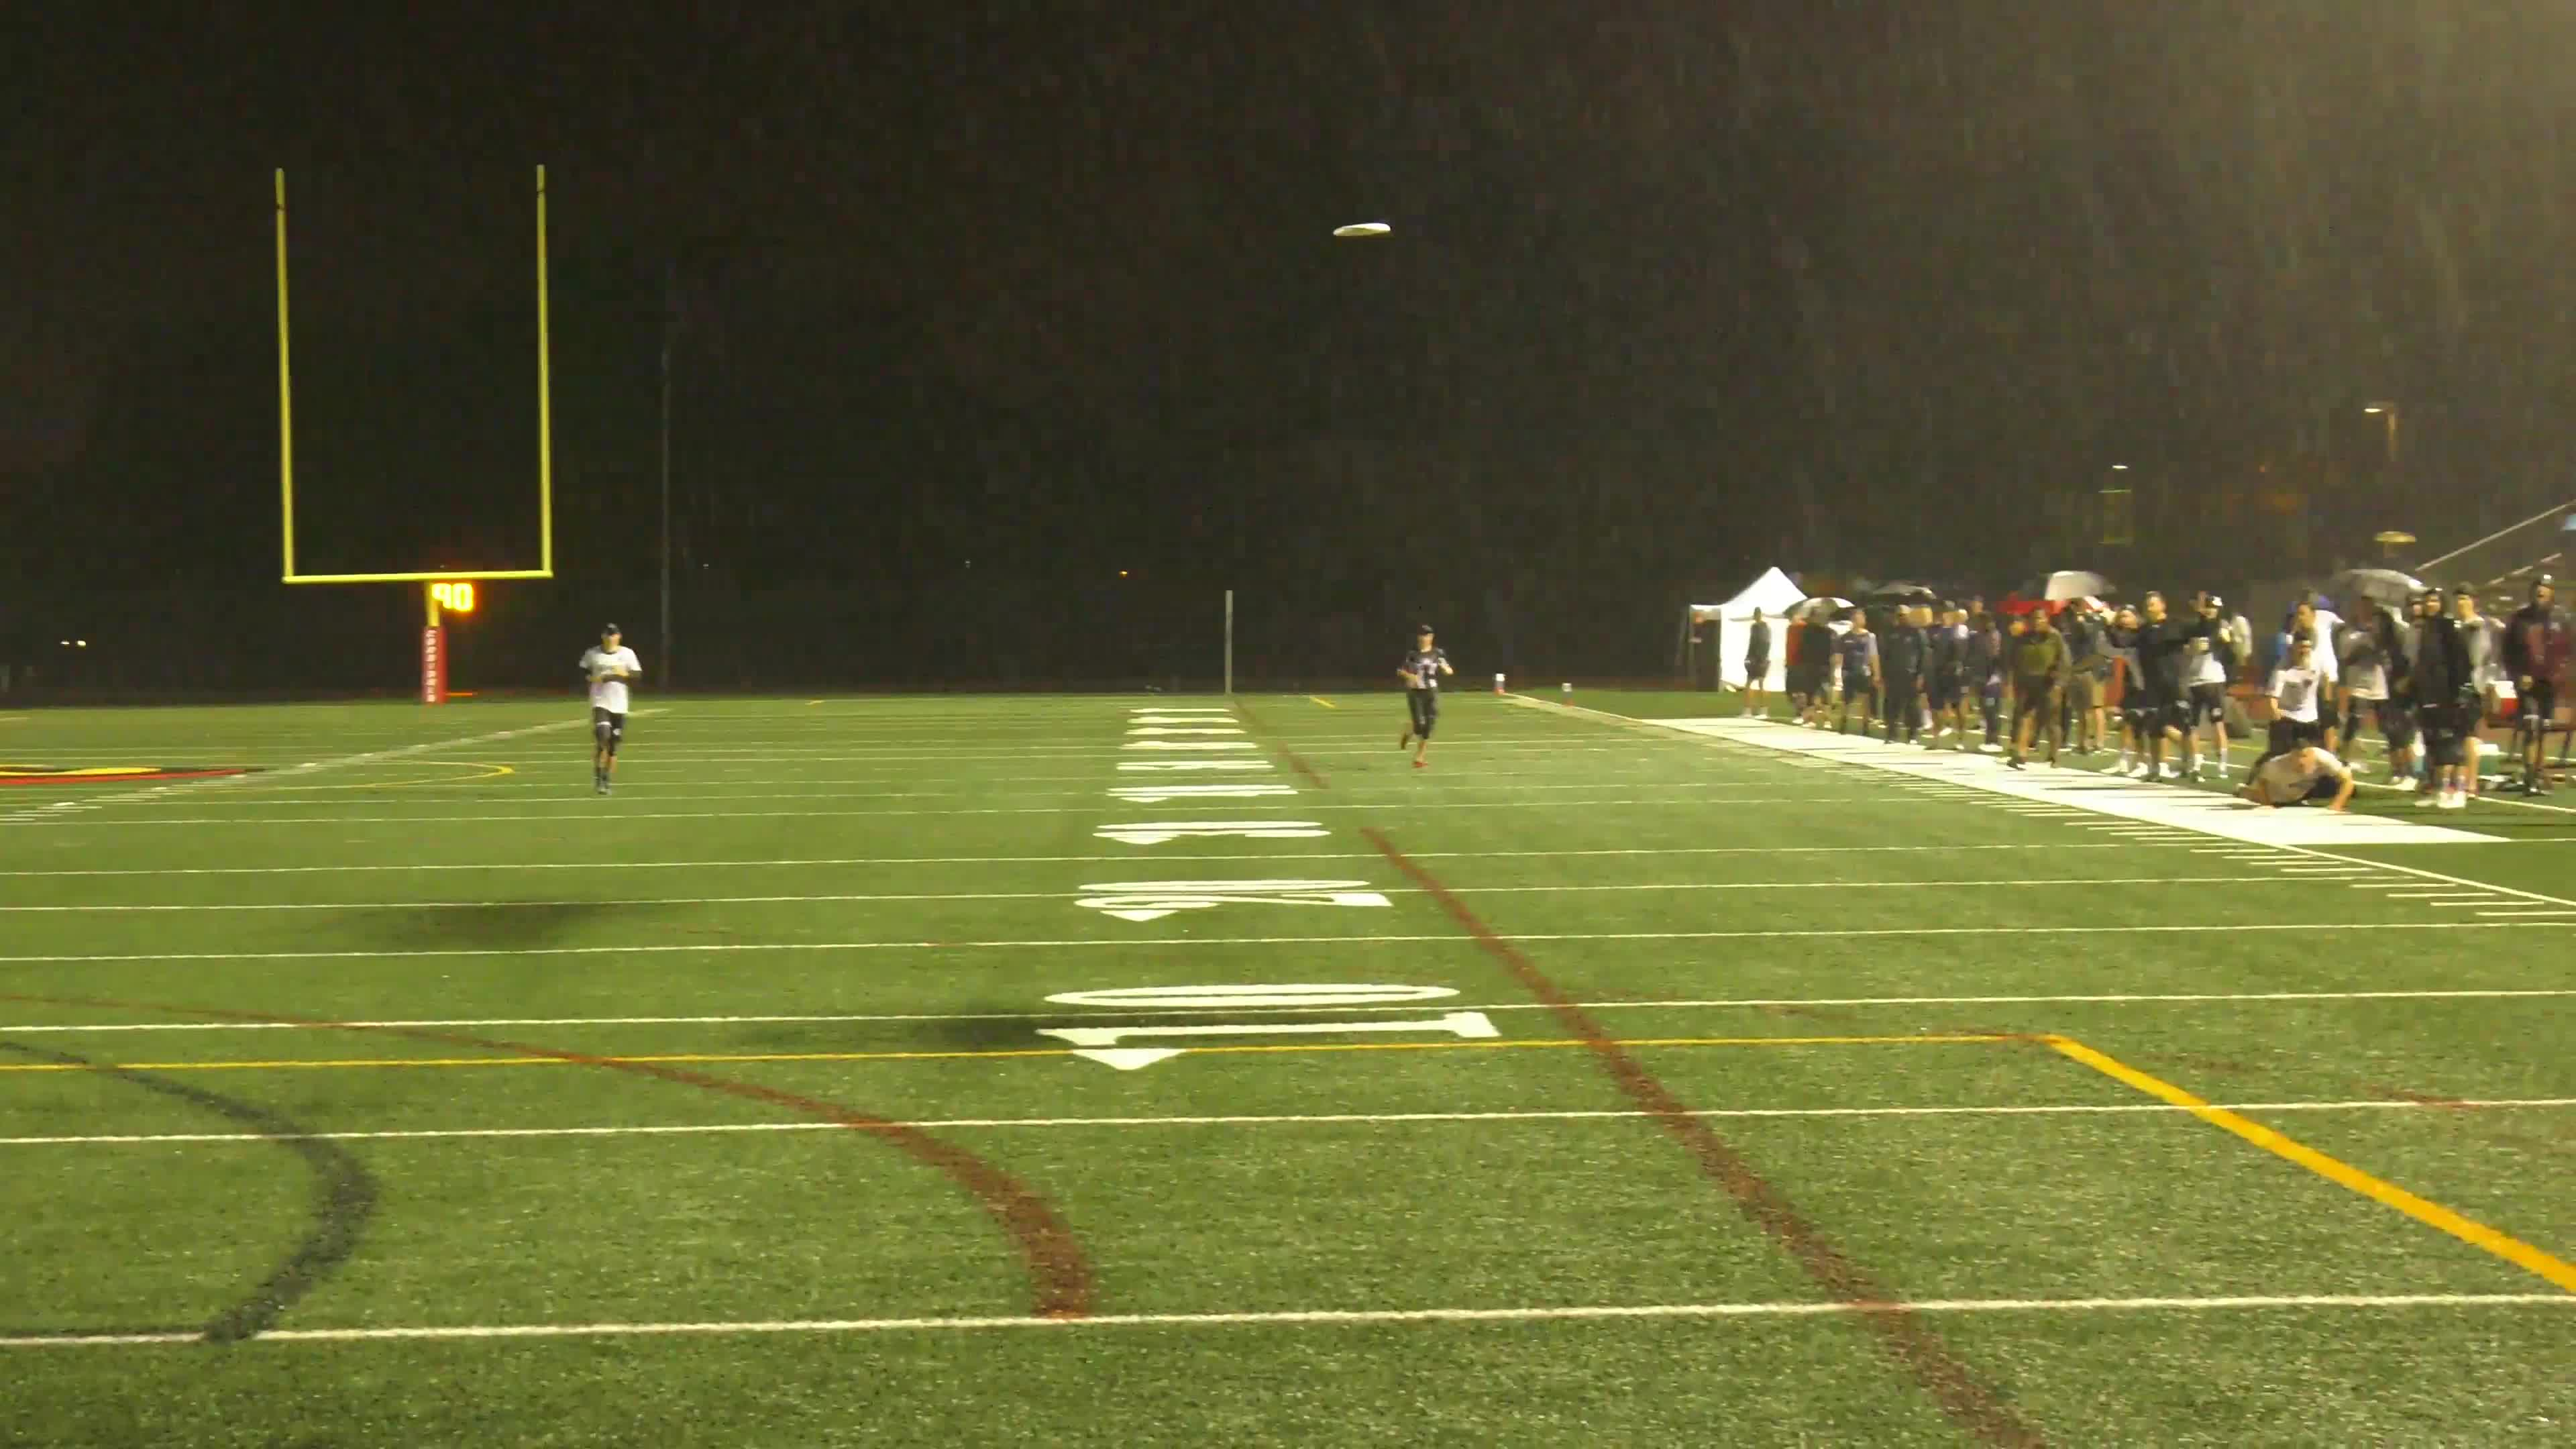 american ultimate disc league, audl, raining, ultimate, ultimate frisbee, Matt Stevens Splash GIFs